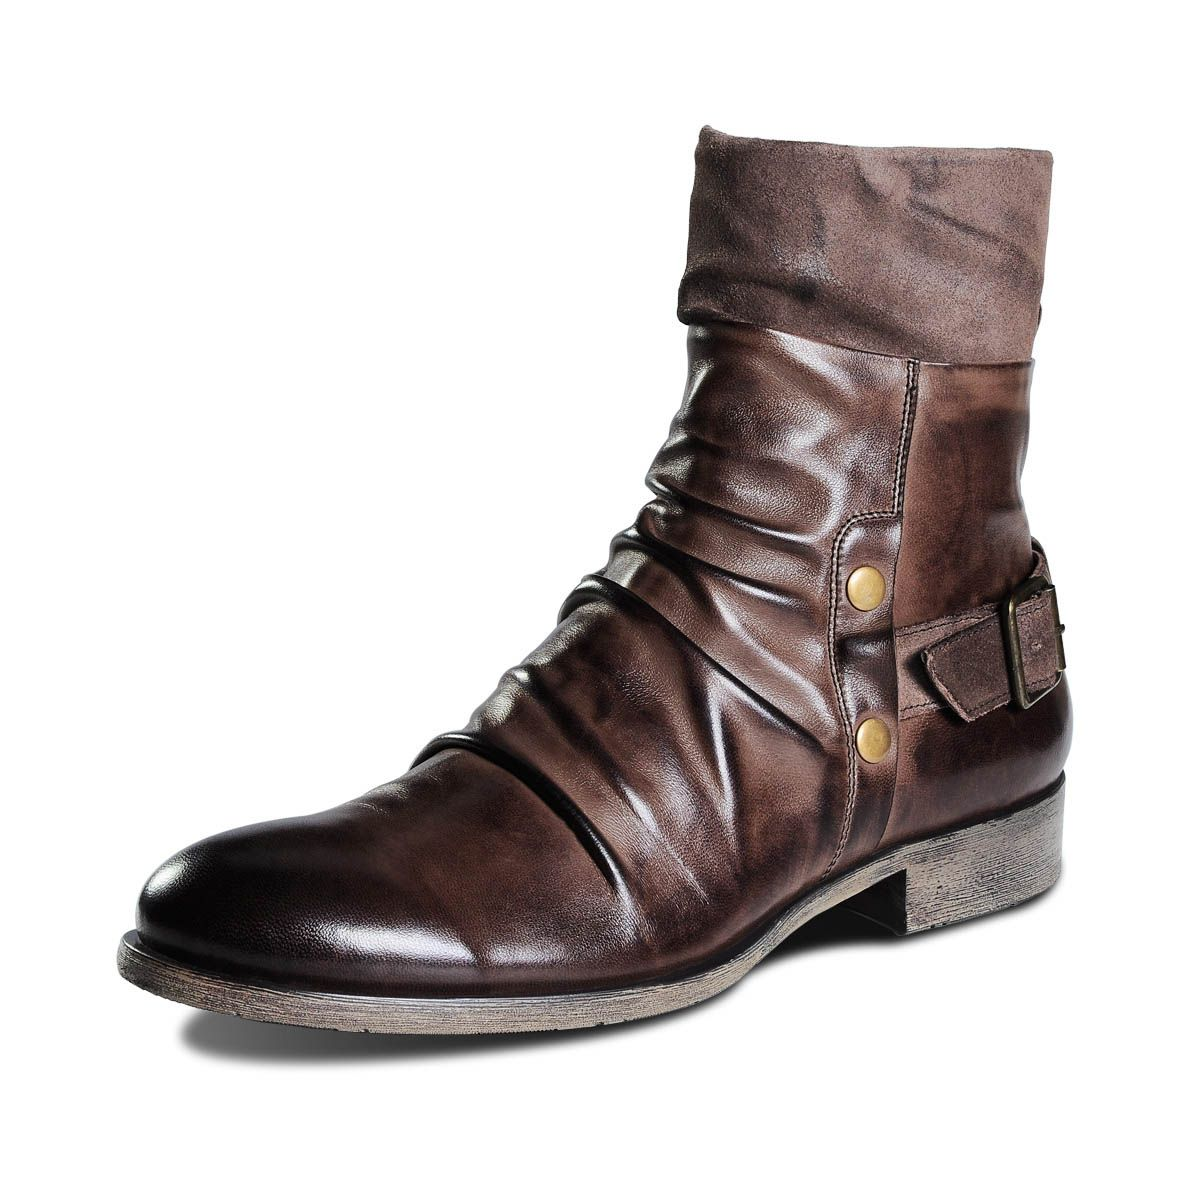 men's dress boots - Google Search | Clothing | Pinterest | Dresses ...